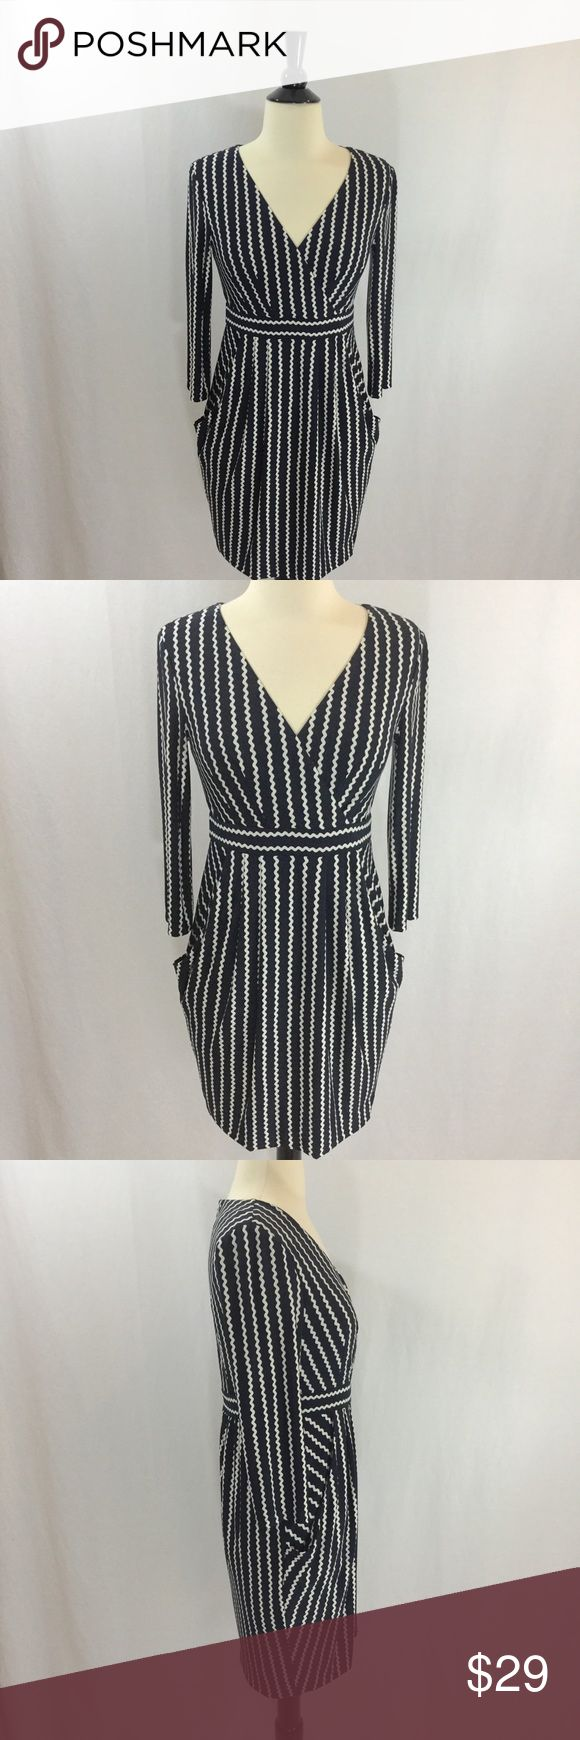 Maggy London Petites navy and cream striped dress Gorgeous navy and cream zigzag striped petite dress with pockets. Back zip, fully lined. Size 4P from Maggy London Petites. Approximately 33 inches long, 16.5 inches armpit to armpit, 27 inch waist, 36 inch hips, 14.5 inch shoulders, 17 inch sleeves. Offers welcome. Thanks for shopping my closet! Maggy London Dresses Long Sleeve